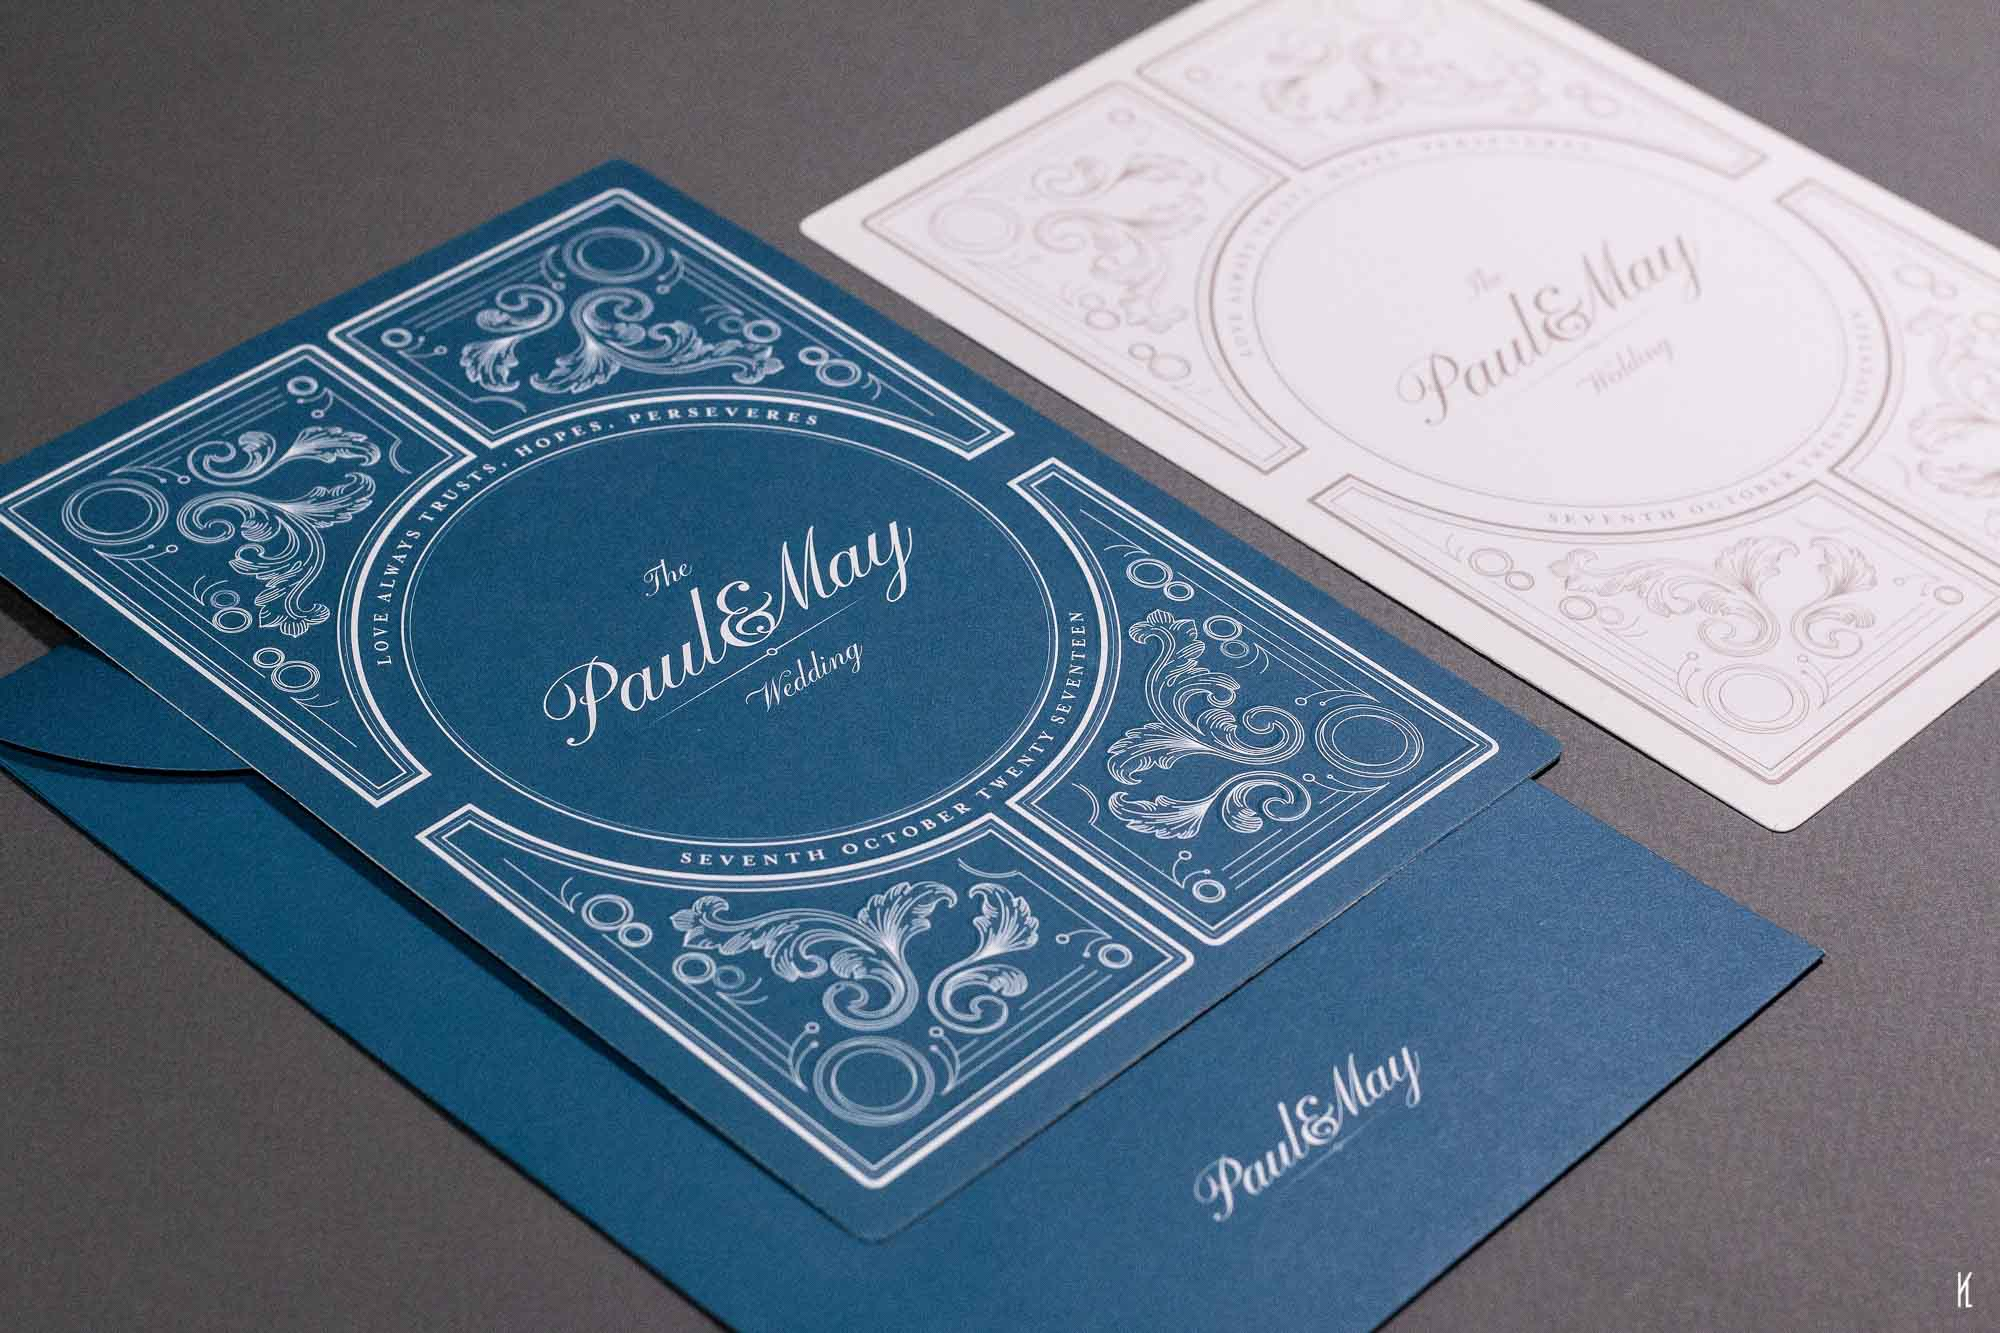 Classy wedding card design for Paul & May